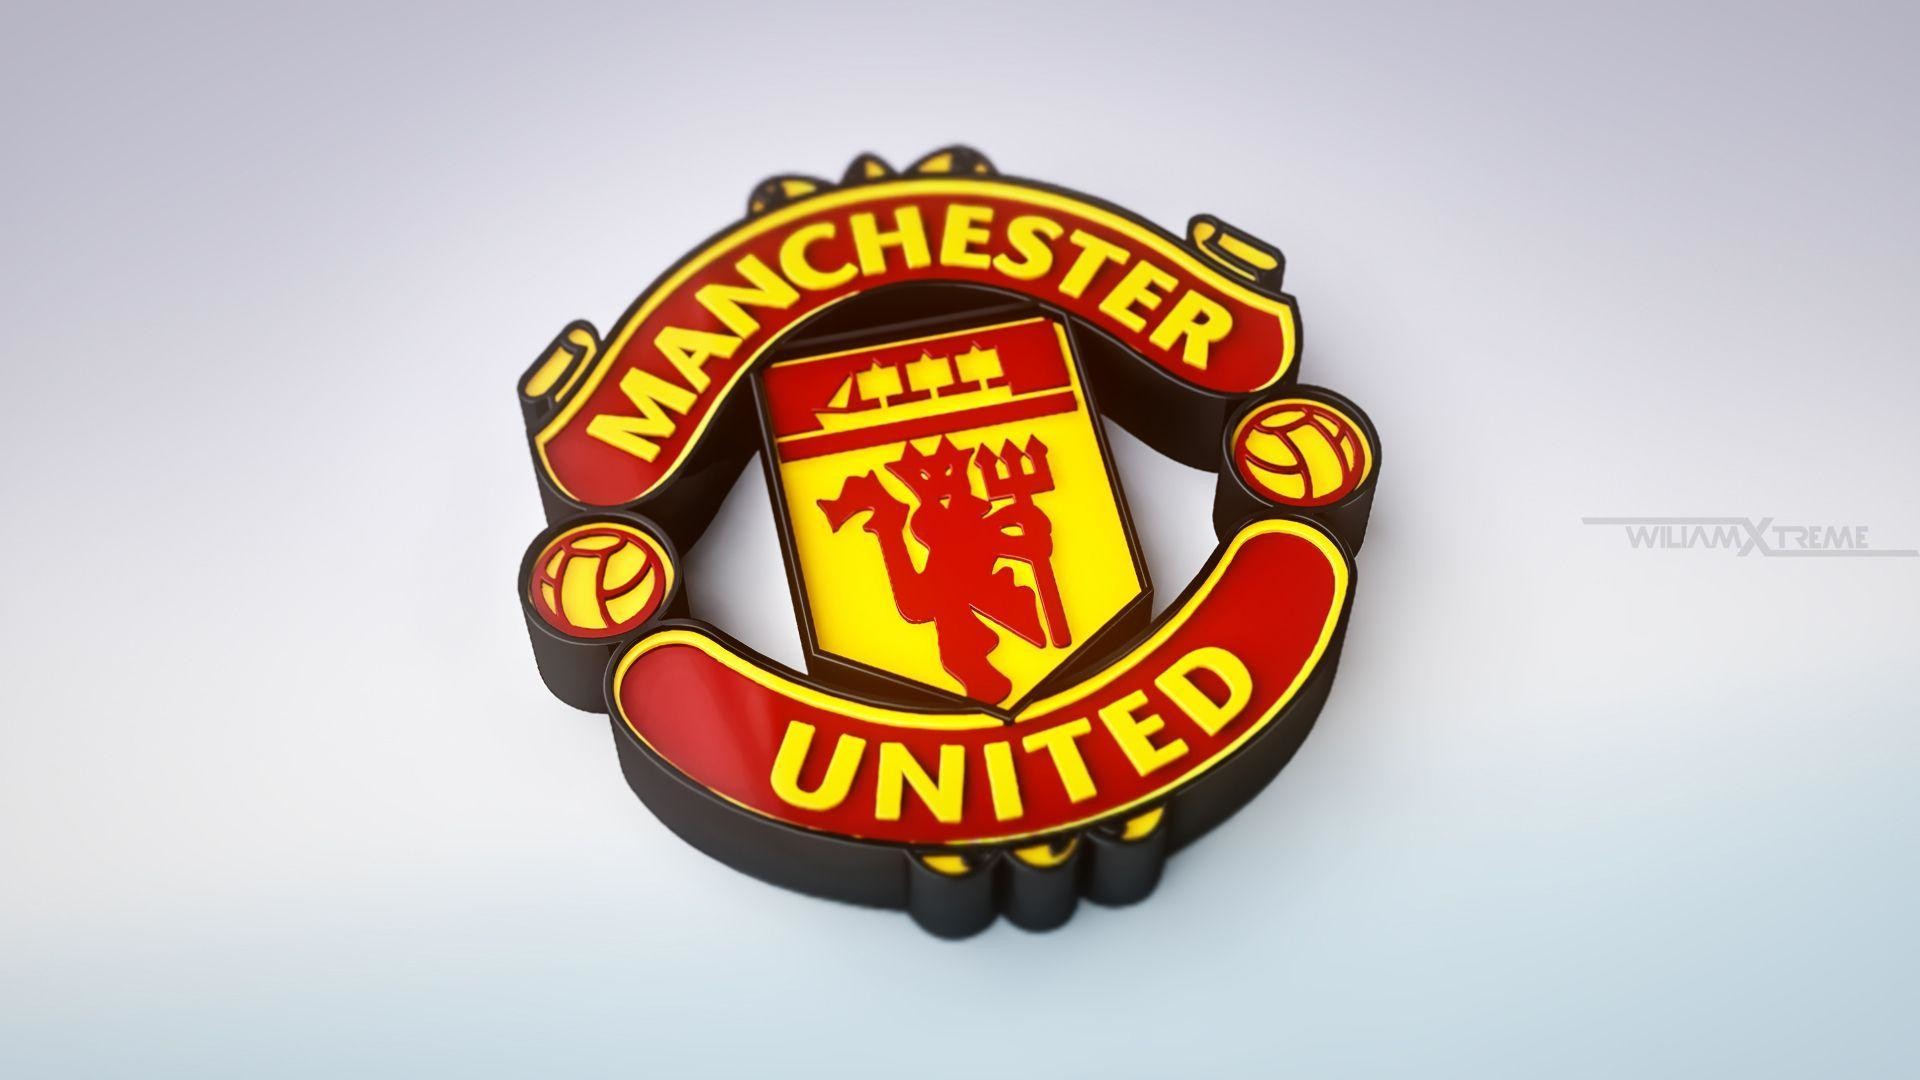 Manchester United Wallpaper 3d 2018 62 Images